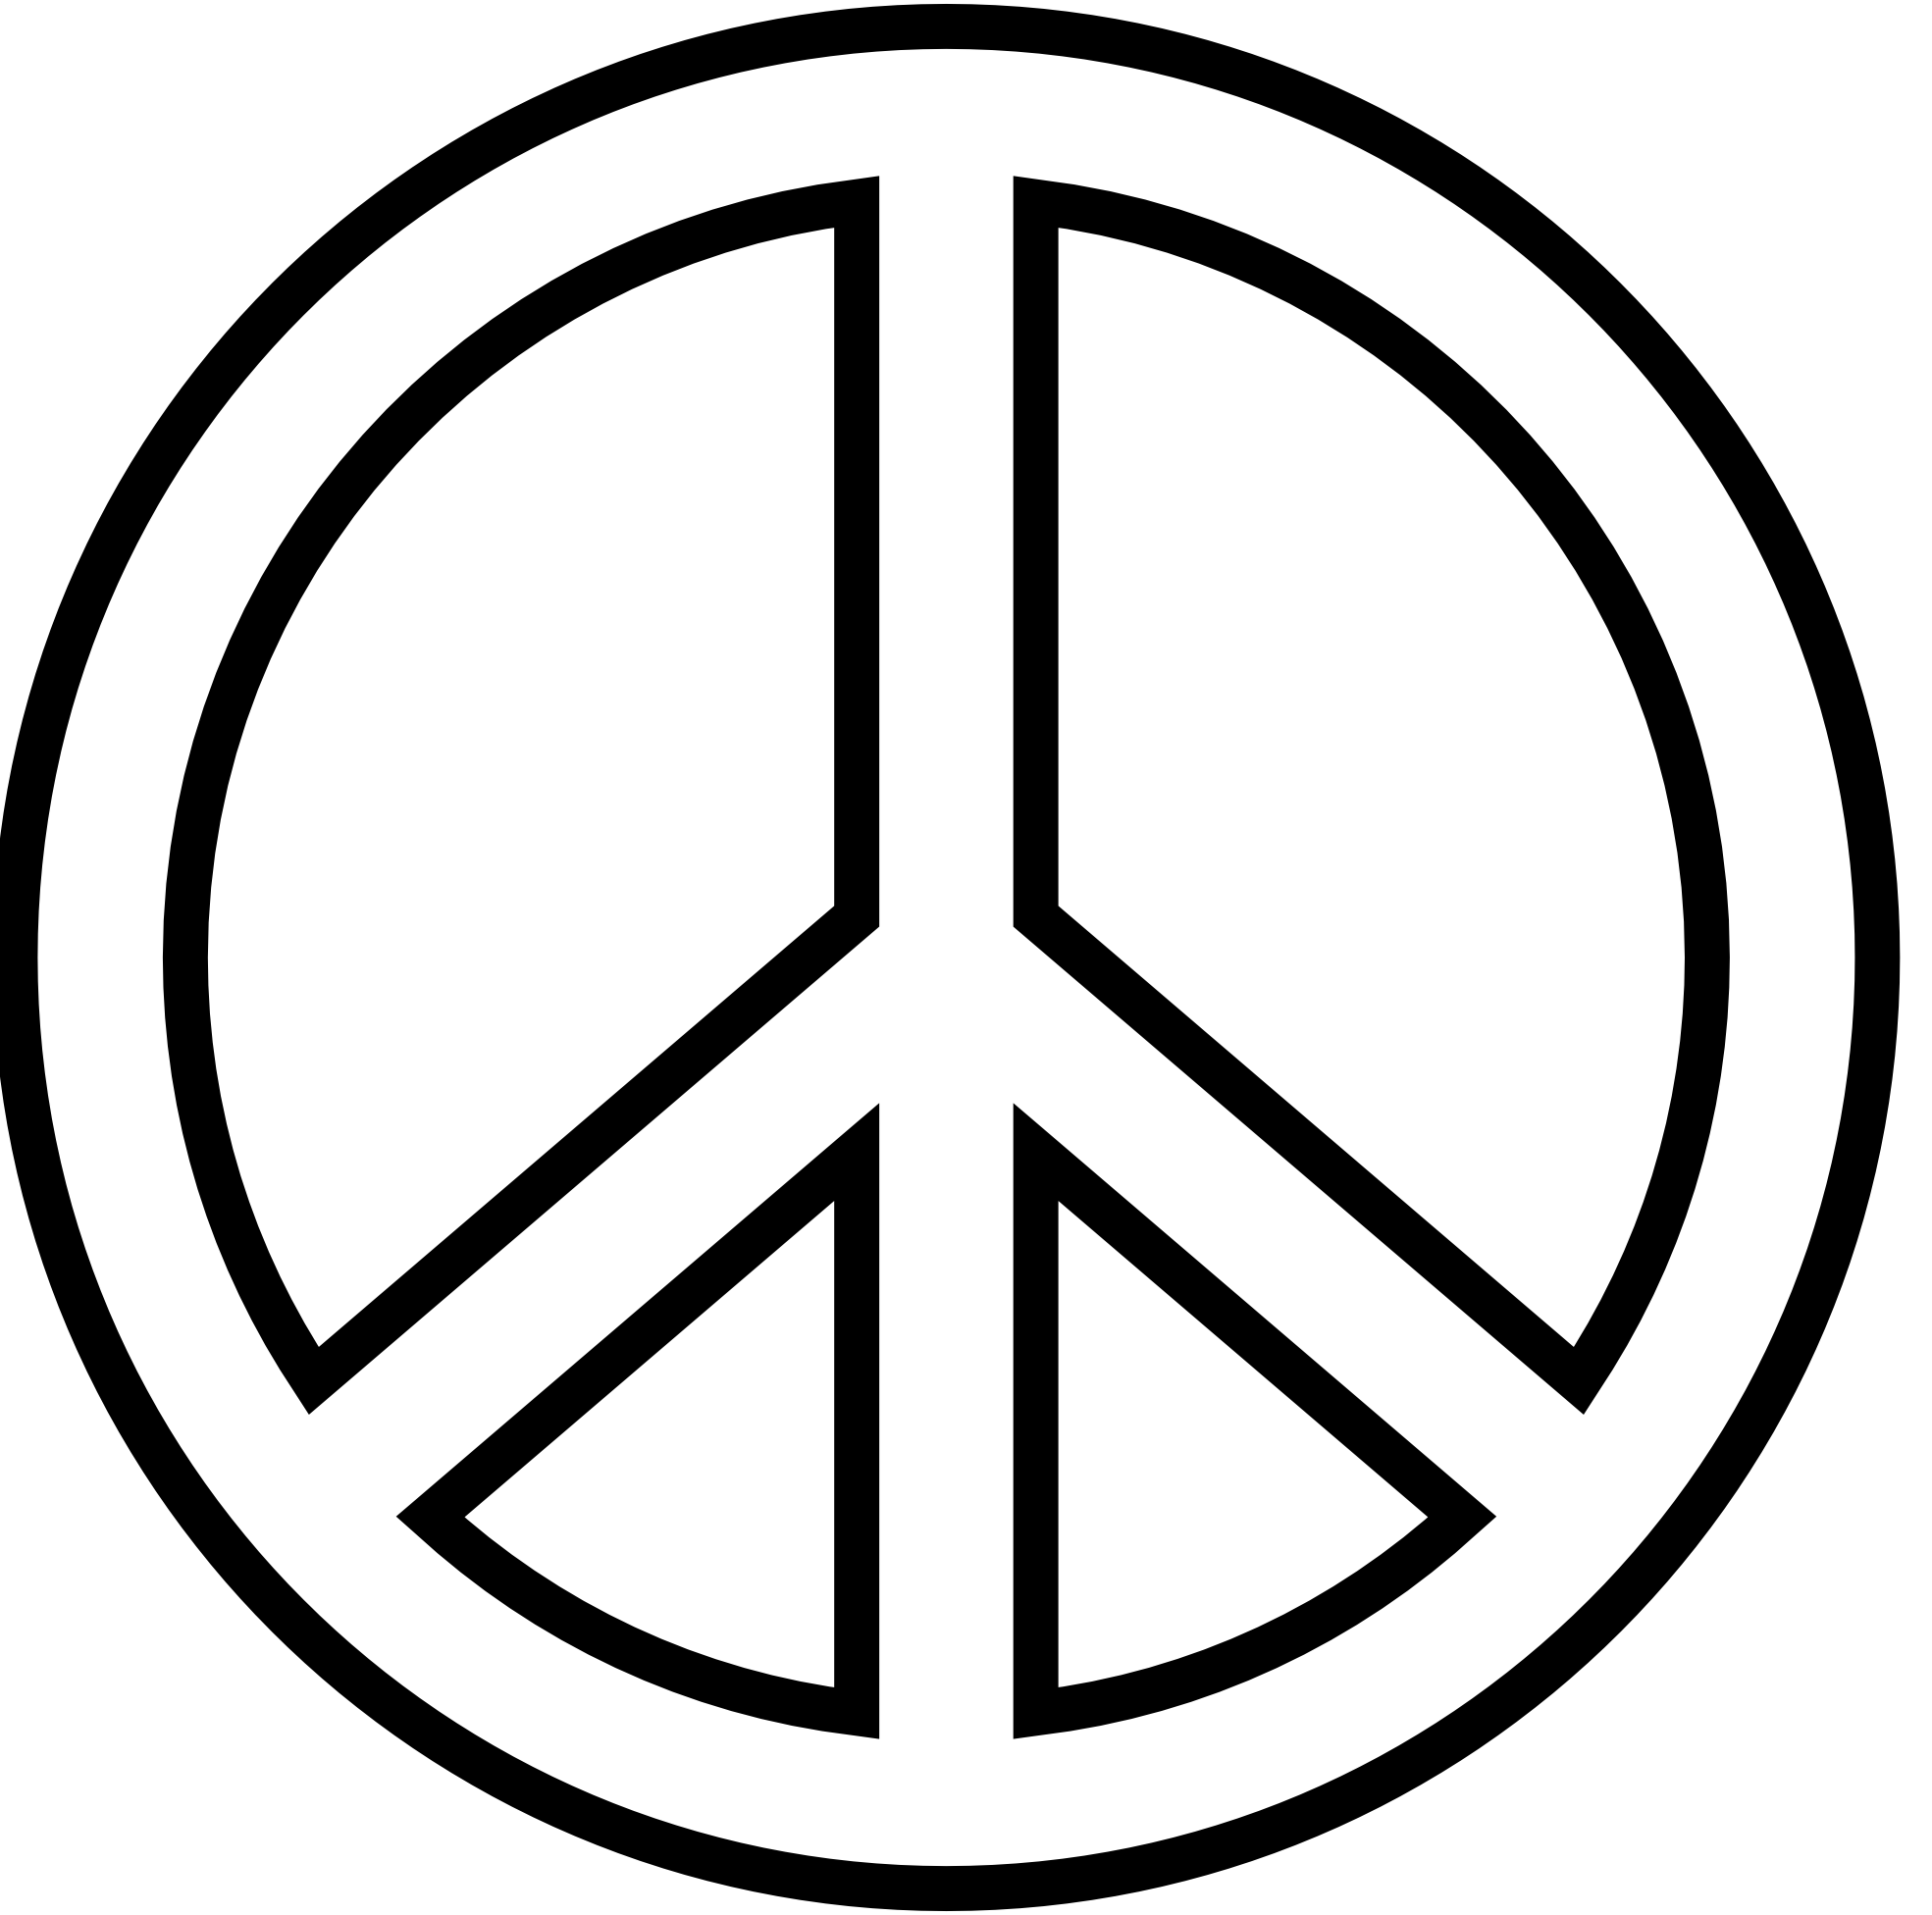 Black and white clipart of peace sign vector transparent download Free Printable Peace Sign, Download Free Clip Art, Free Clip Art on ... vector transparent download